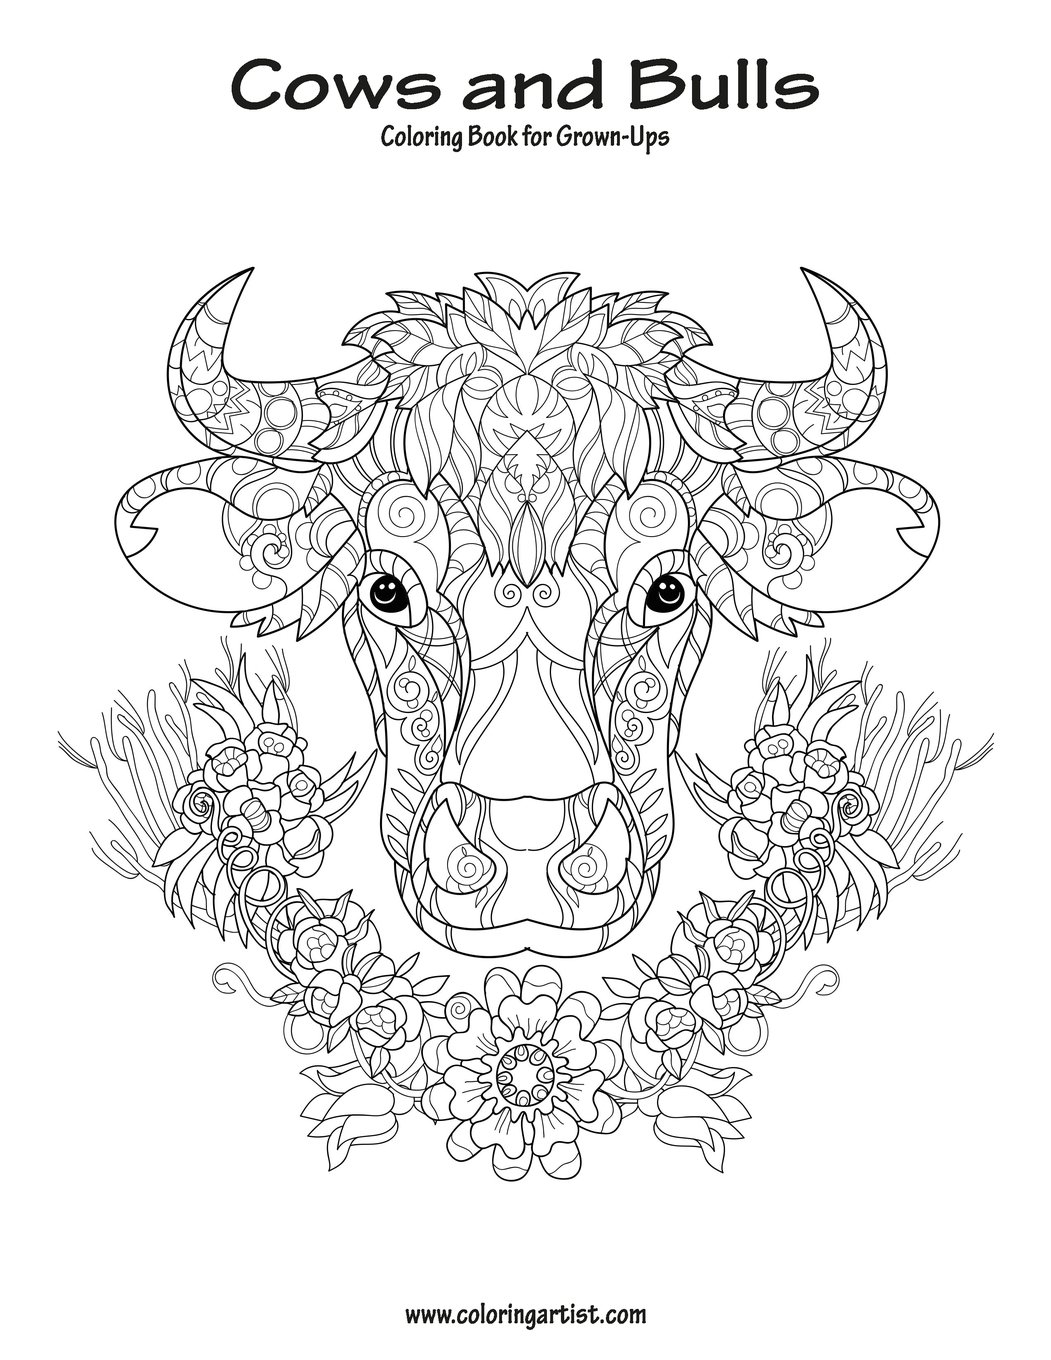 Amazon Com Cows And Bulls Coloring Book For Grown Ups 1 Volume 1 9781721019779 Snels Nick Books